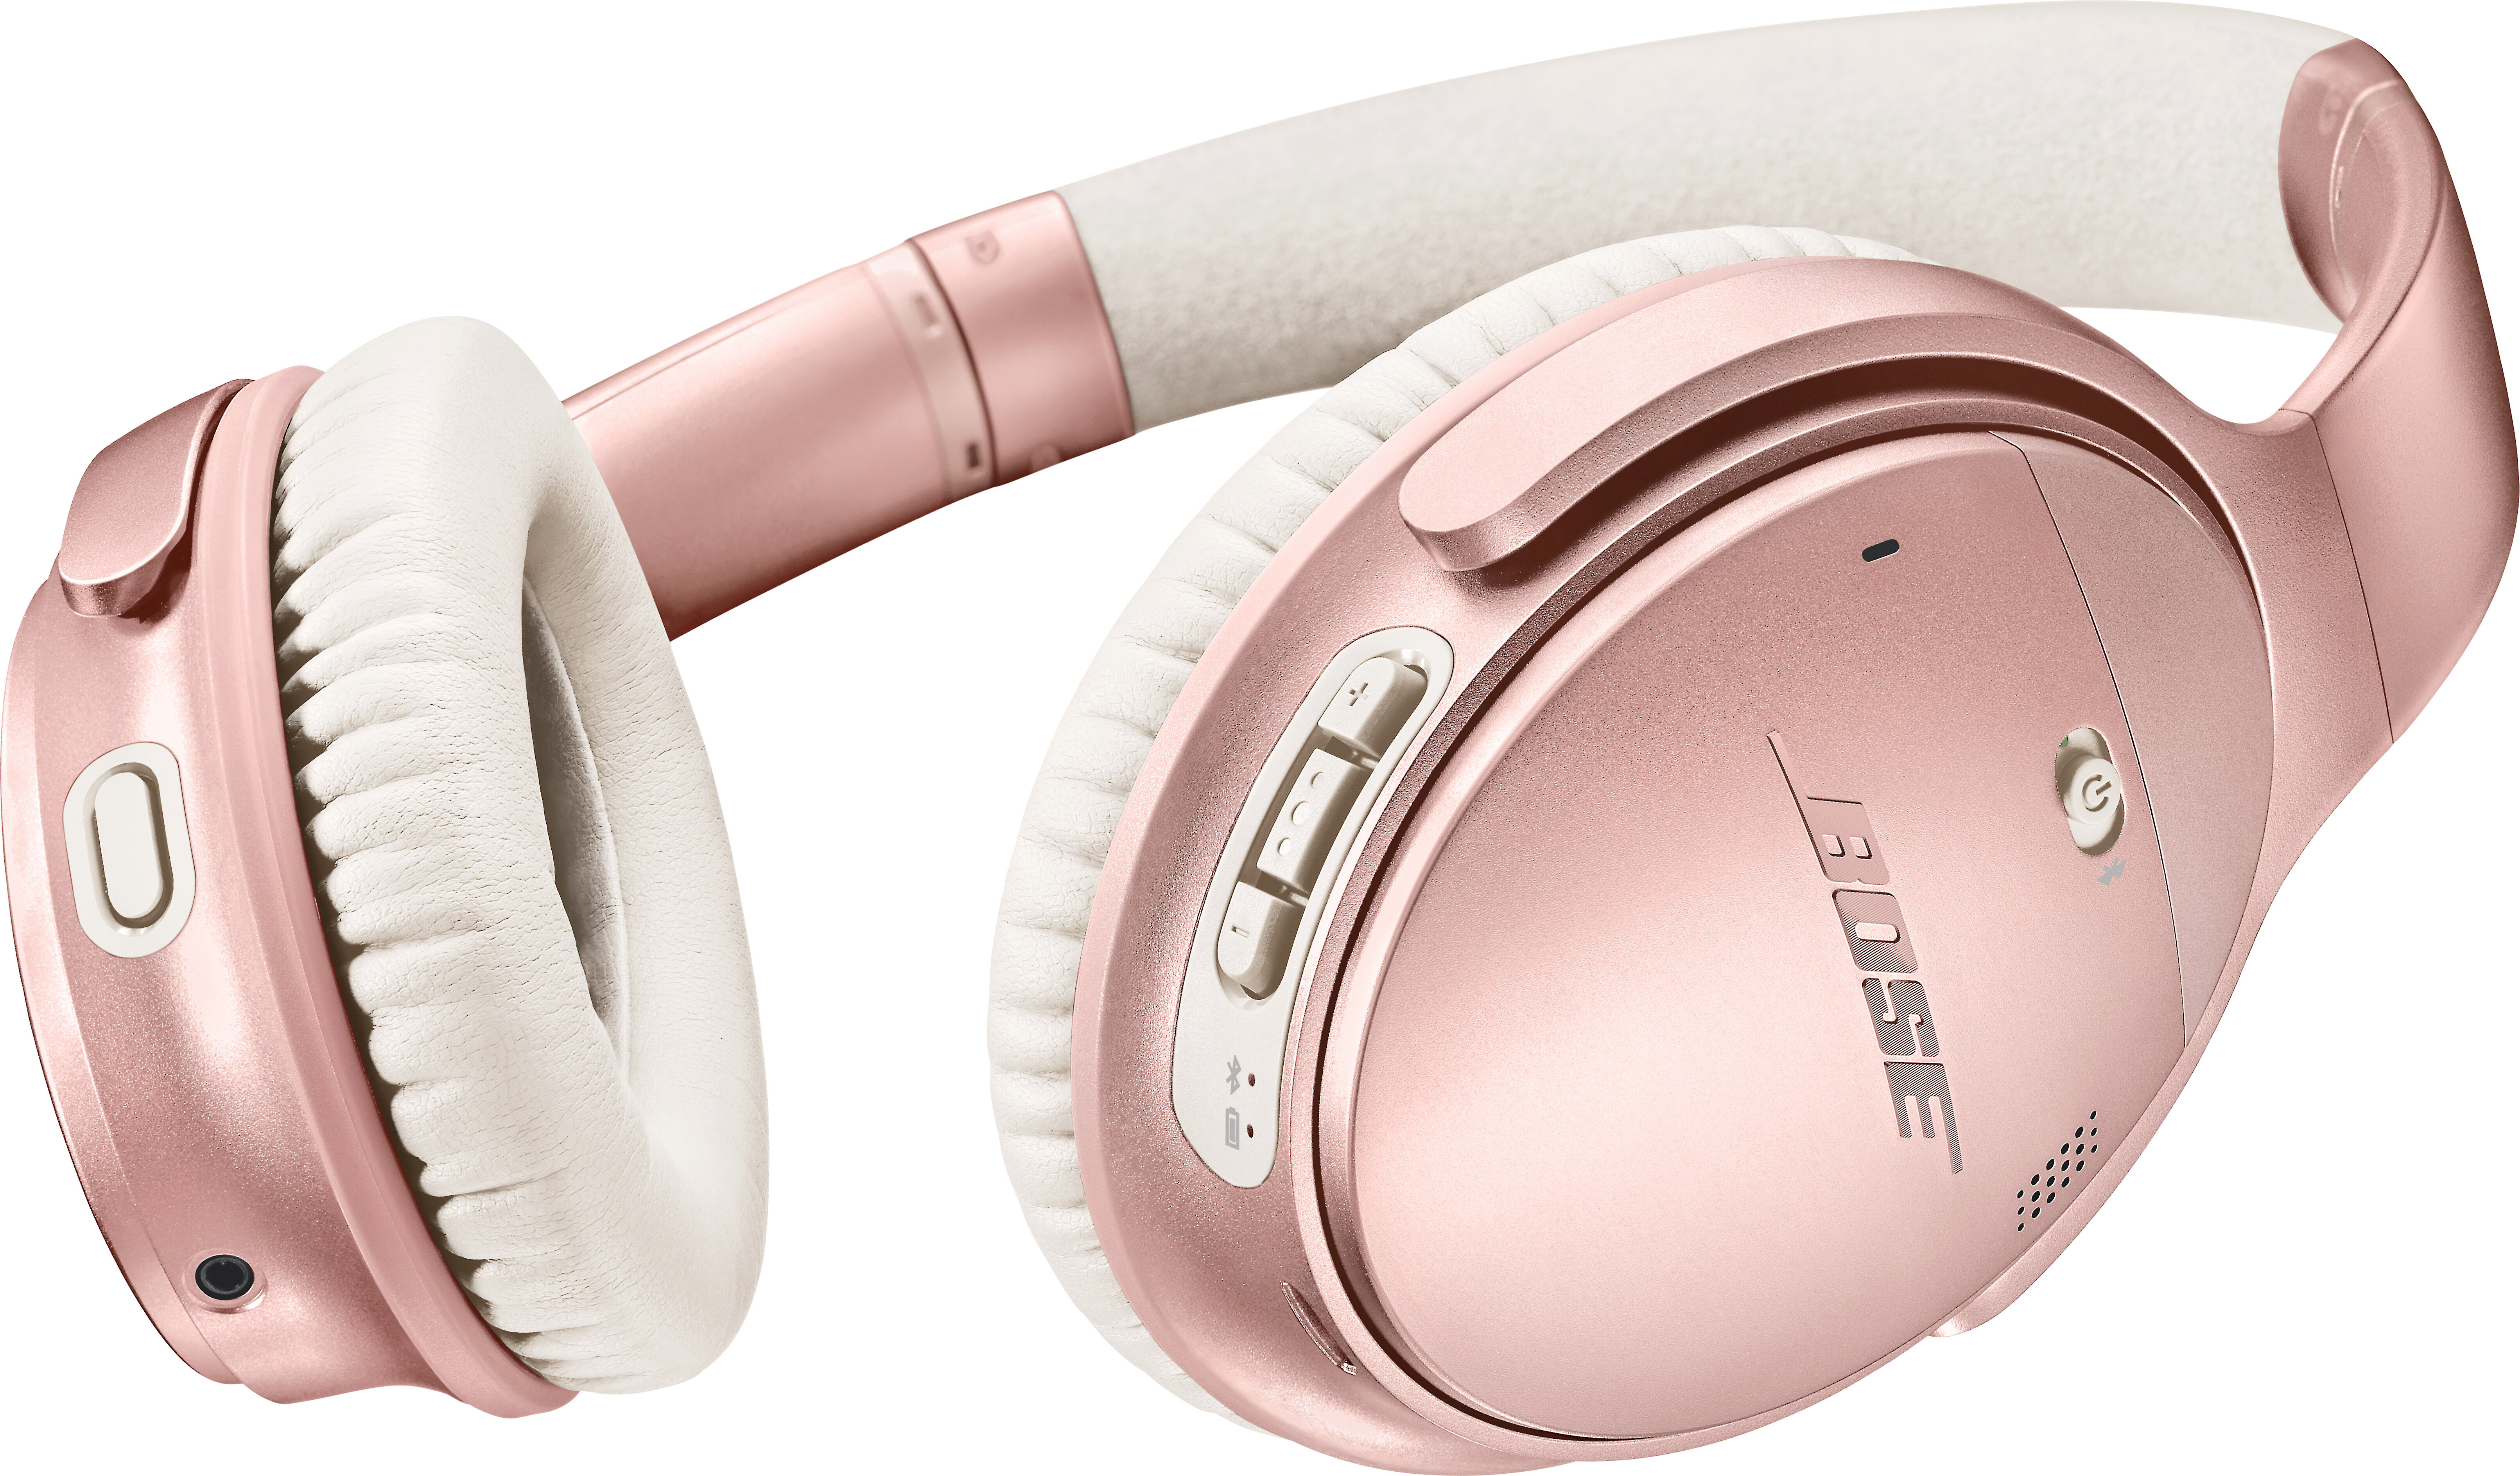 Bose Quietcomfort 35 Wireless Headphones Ii Limited Edition Rose Gold At Crutchfield